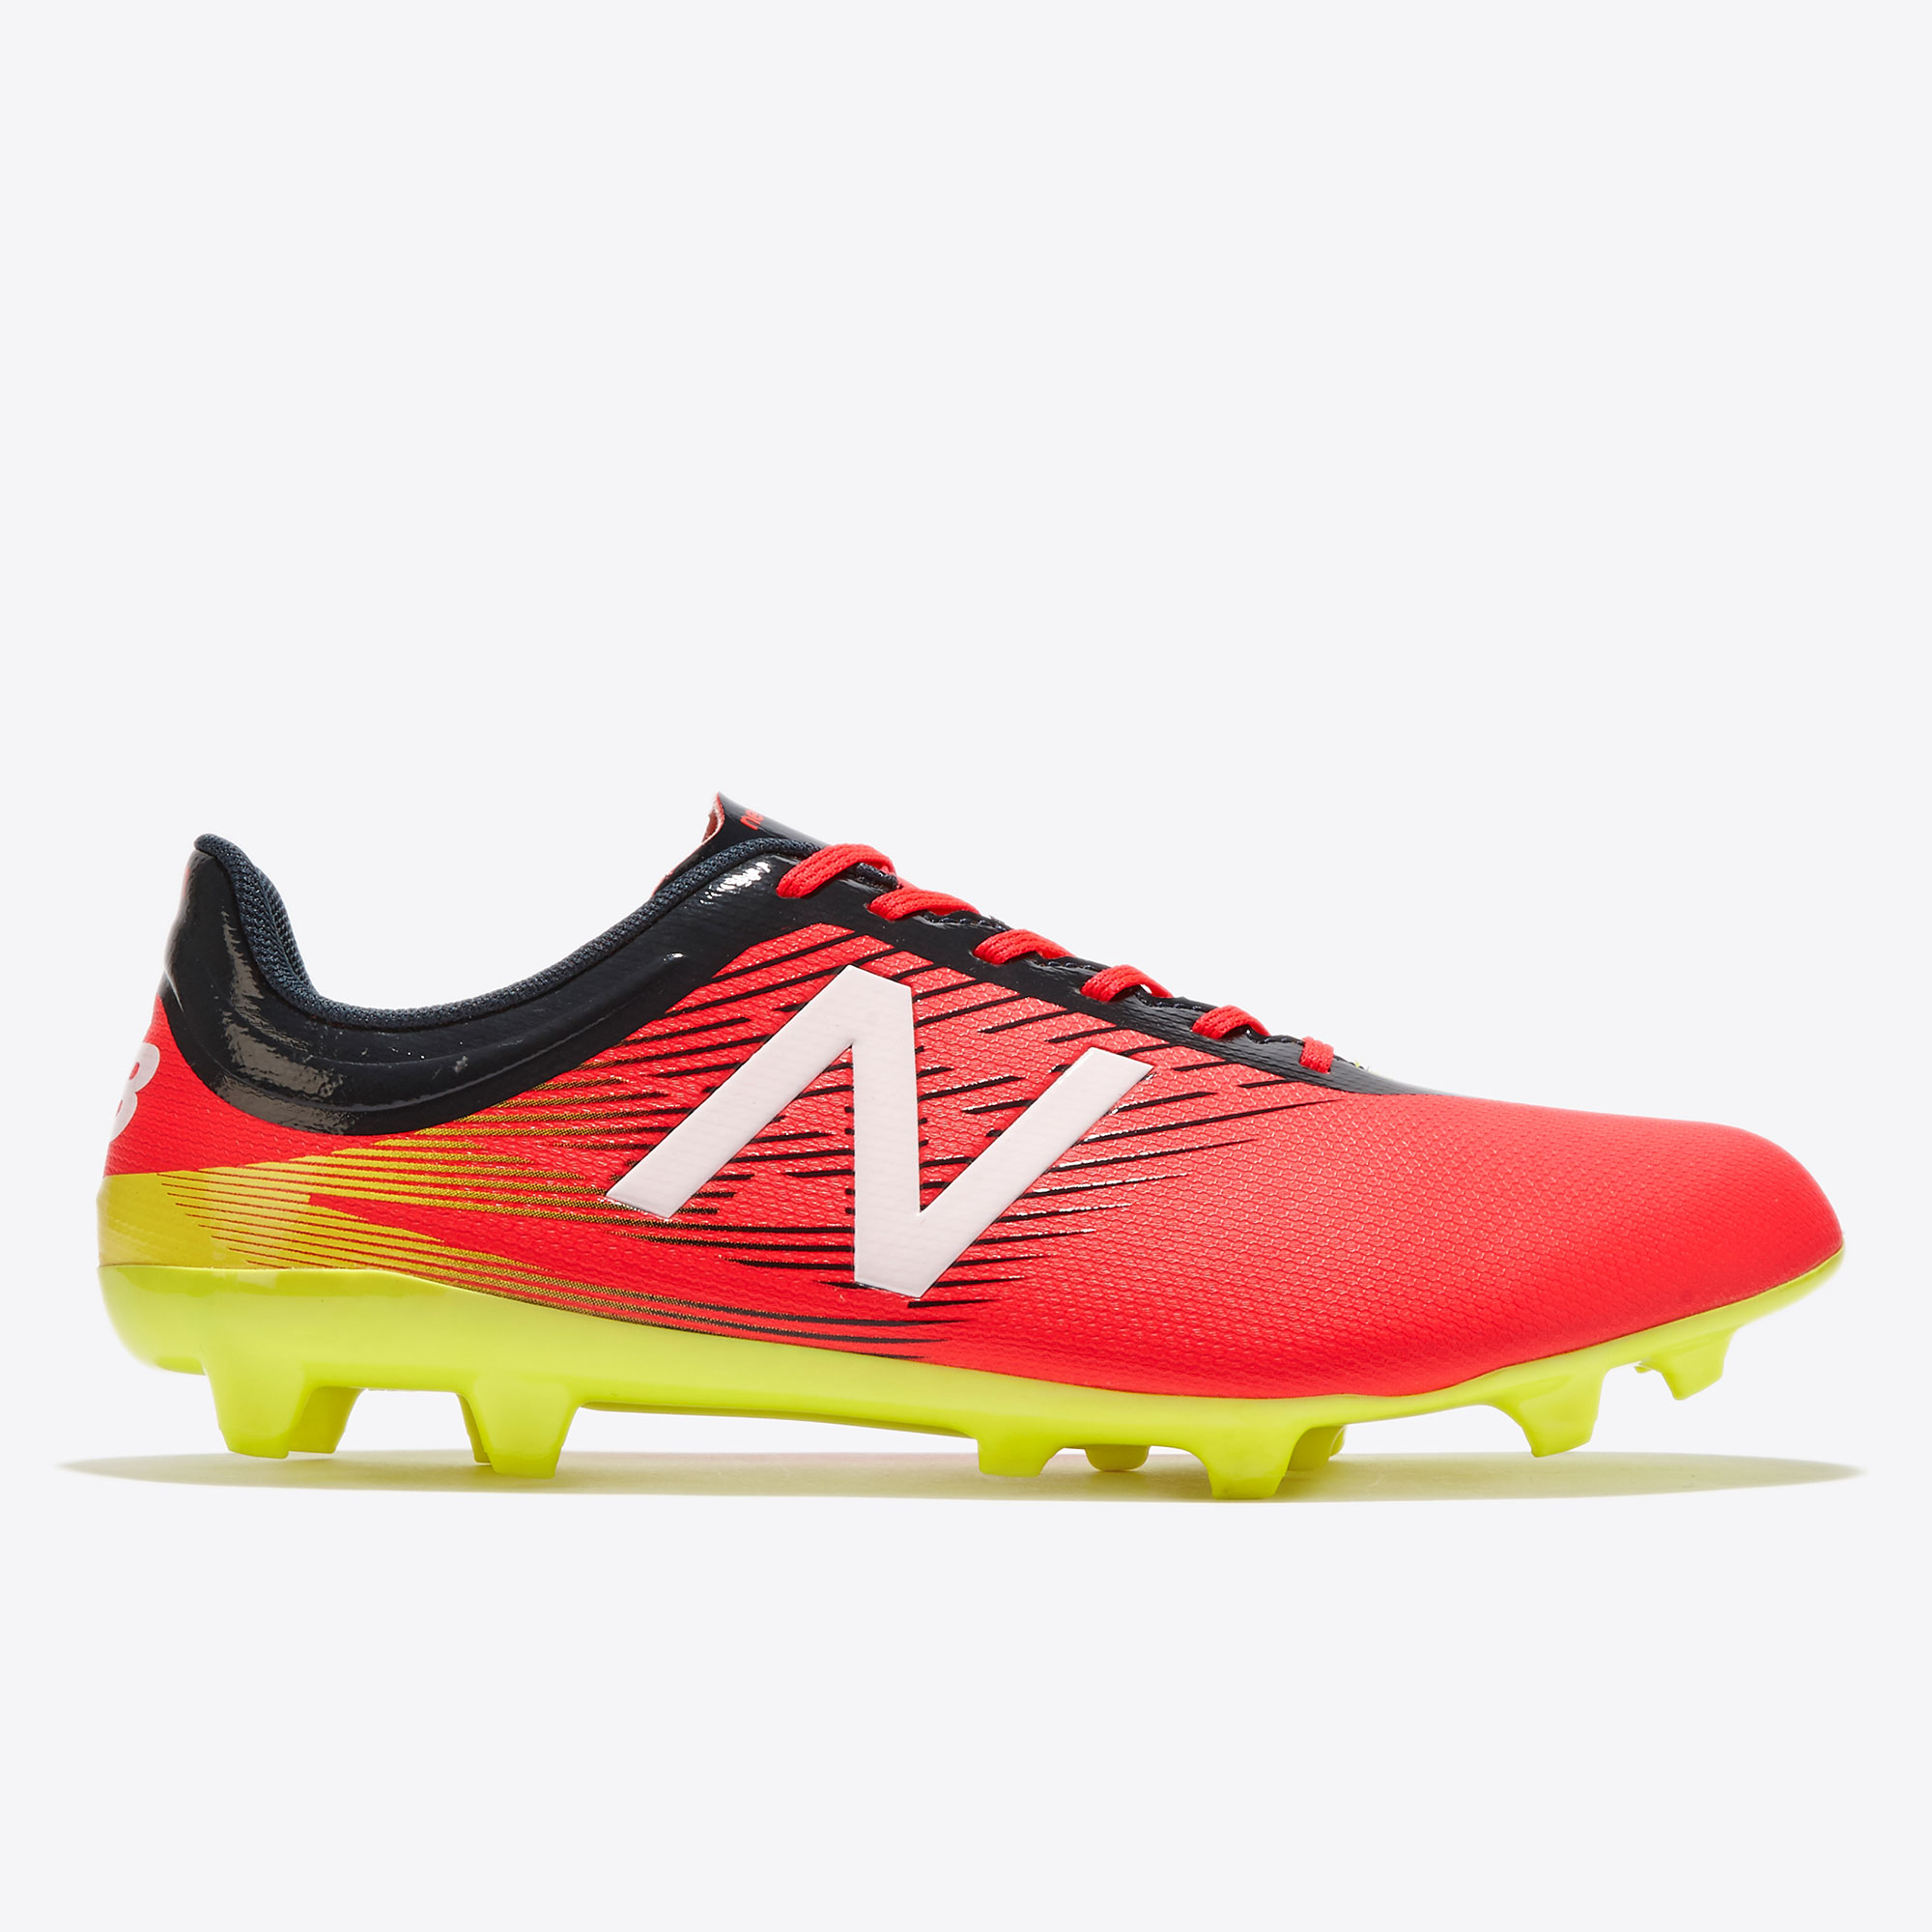 New Balance Furon 2.0 Dispatch Firm Ground Football Boots - Bright Cherry